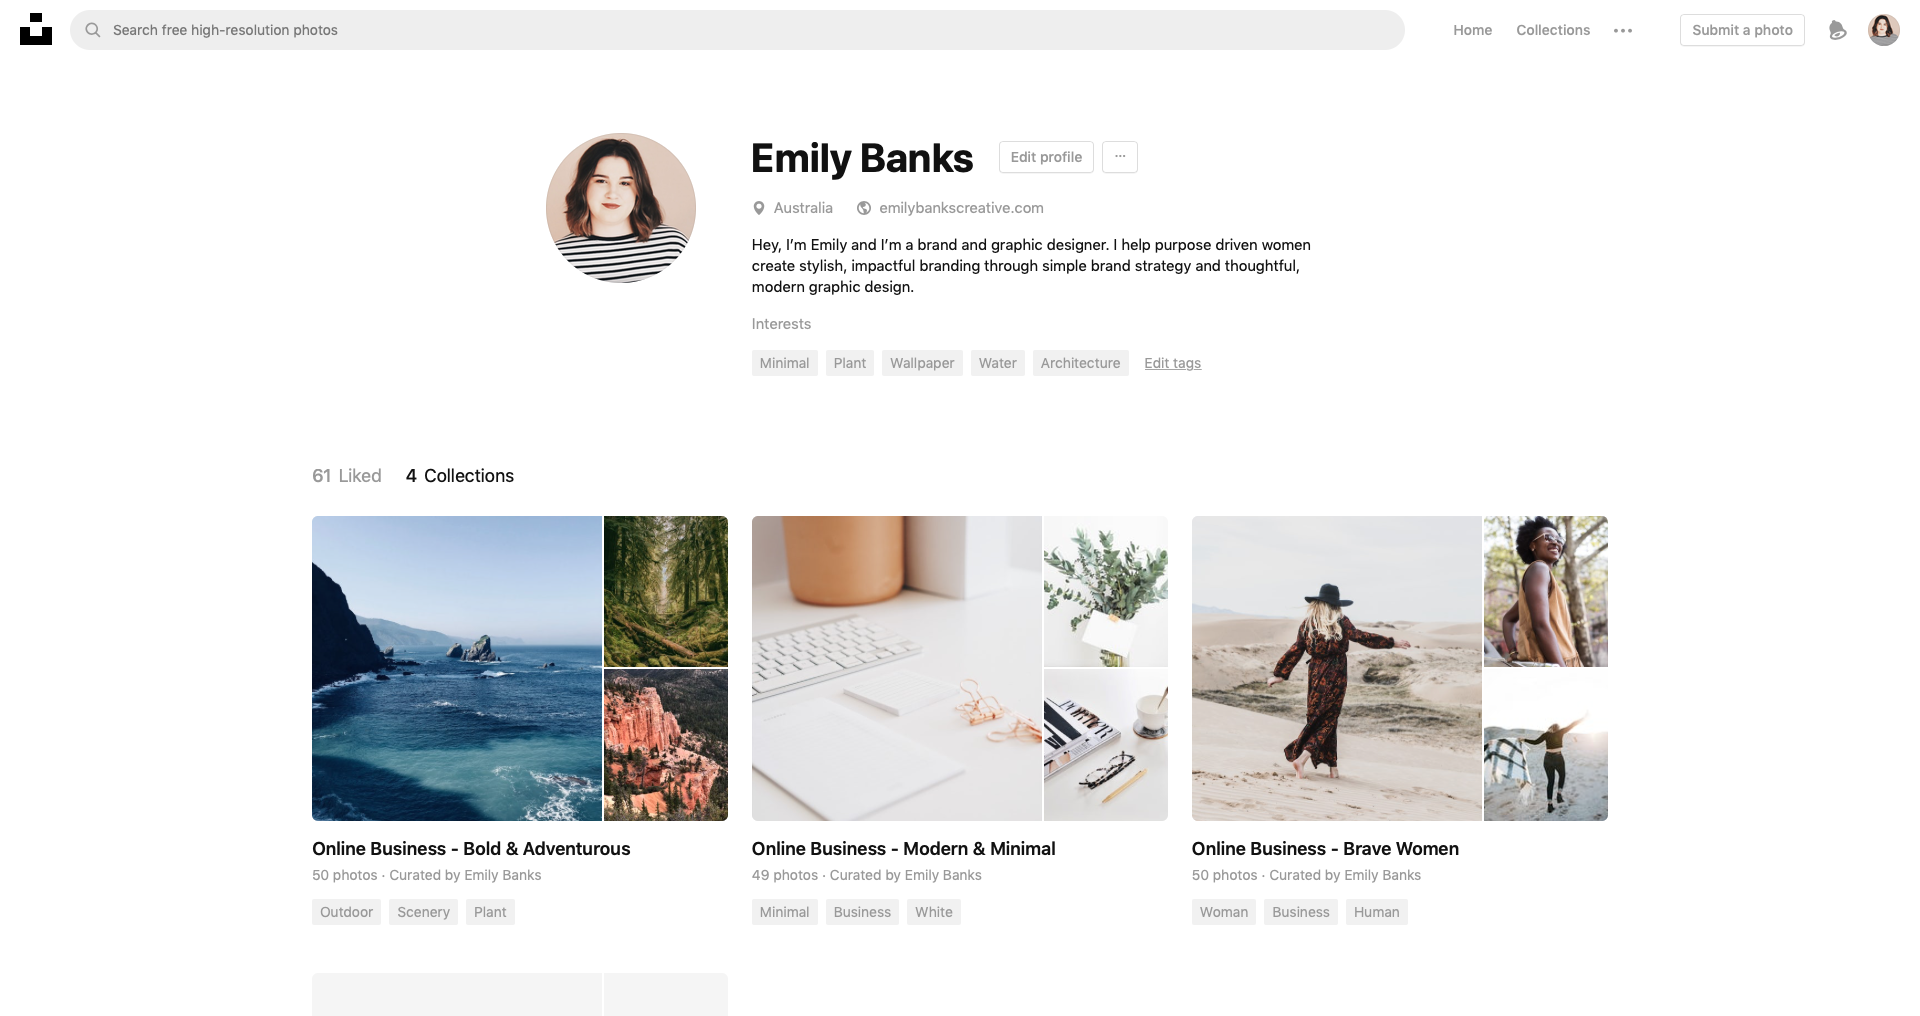 How to build a free stock library of photos for your business - Emily Banks Creative